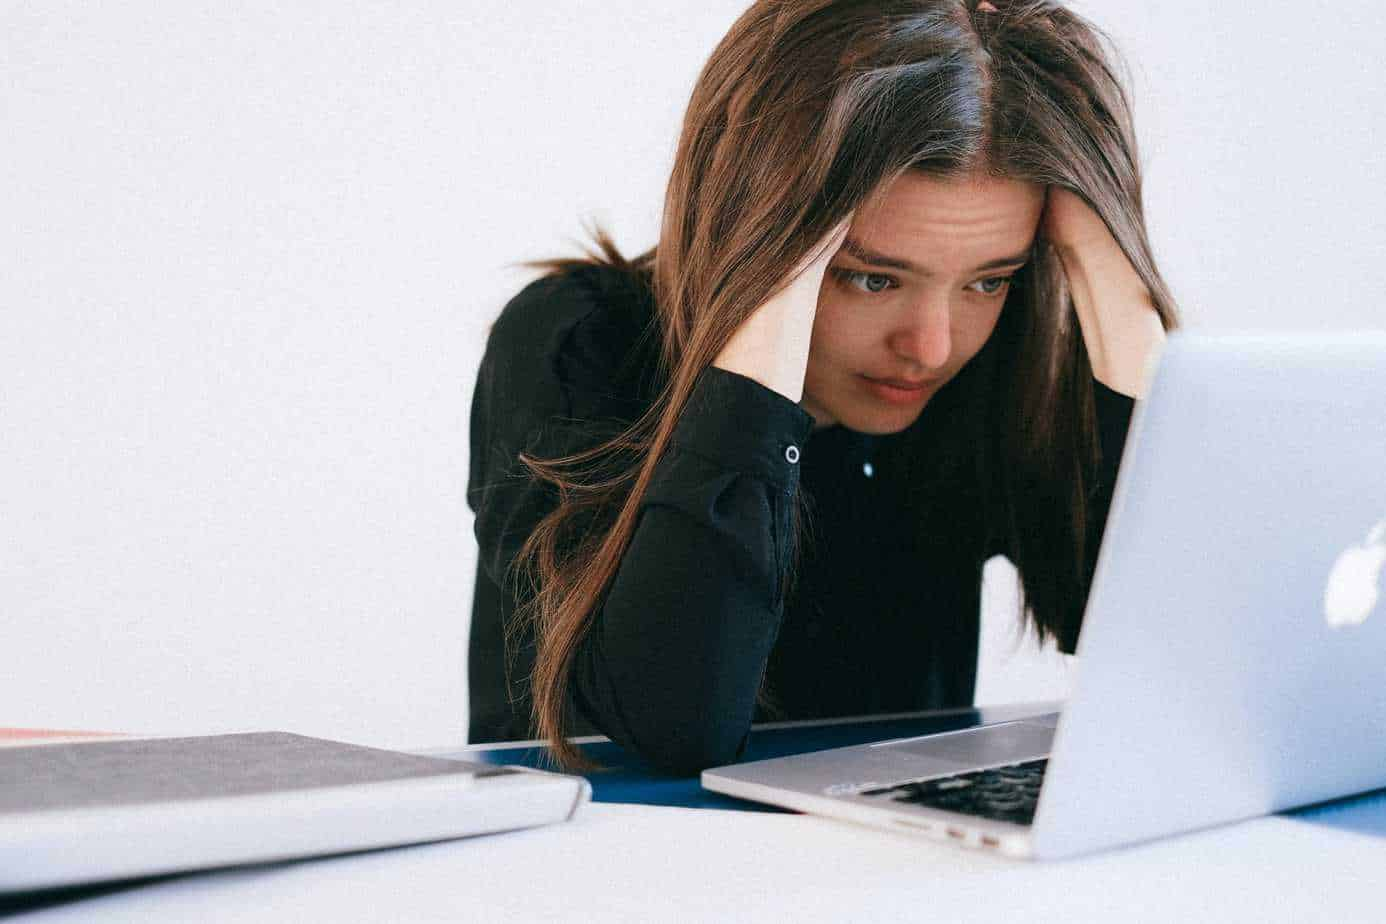 Nurse Burnout: Feeling Stressed and Overwhelmed with Work?